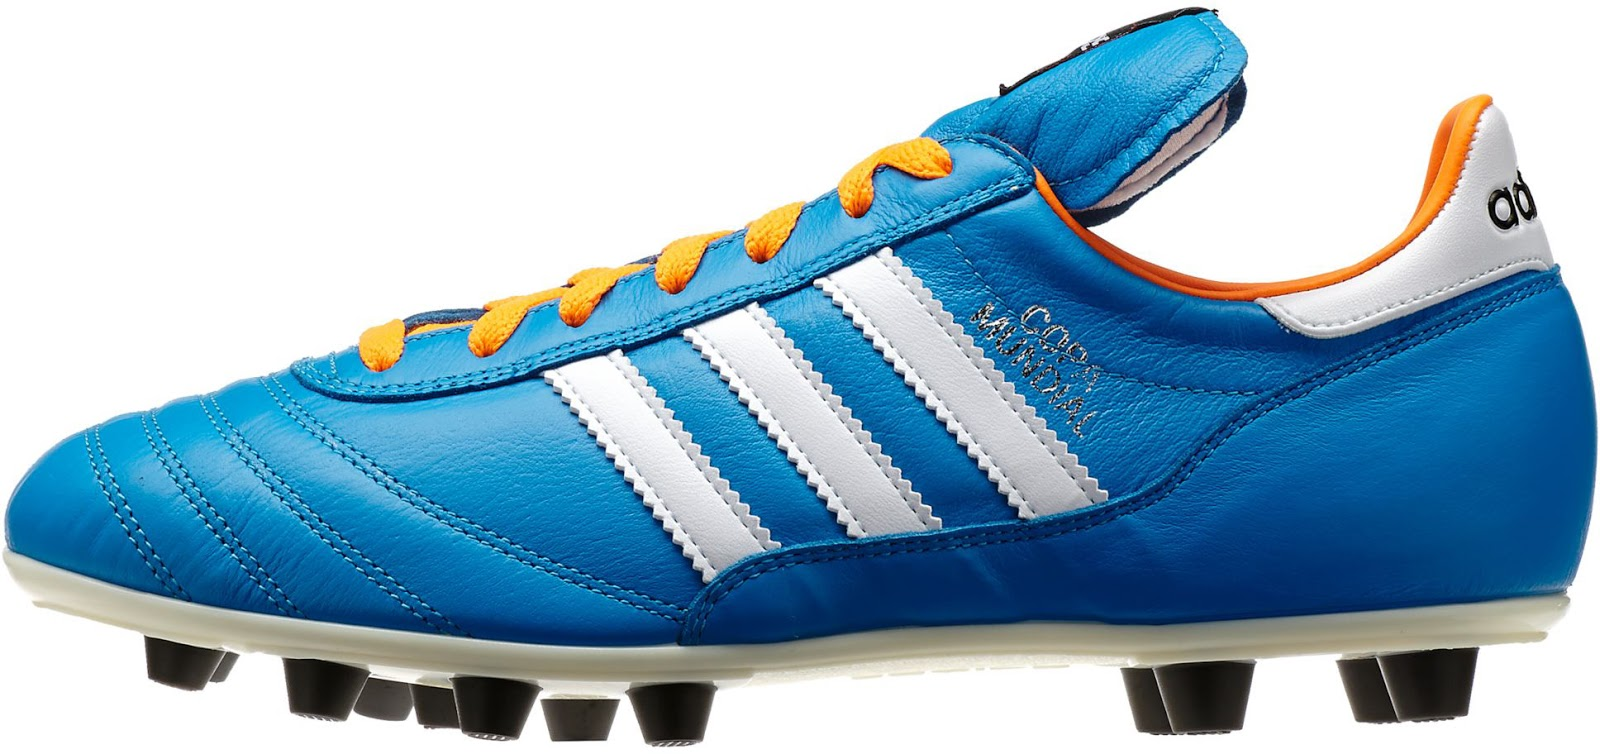 adidas release 5 colorful copa mundial boots samuel. Black Bedroom Furniture Sets. Home Design Ideas